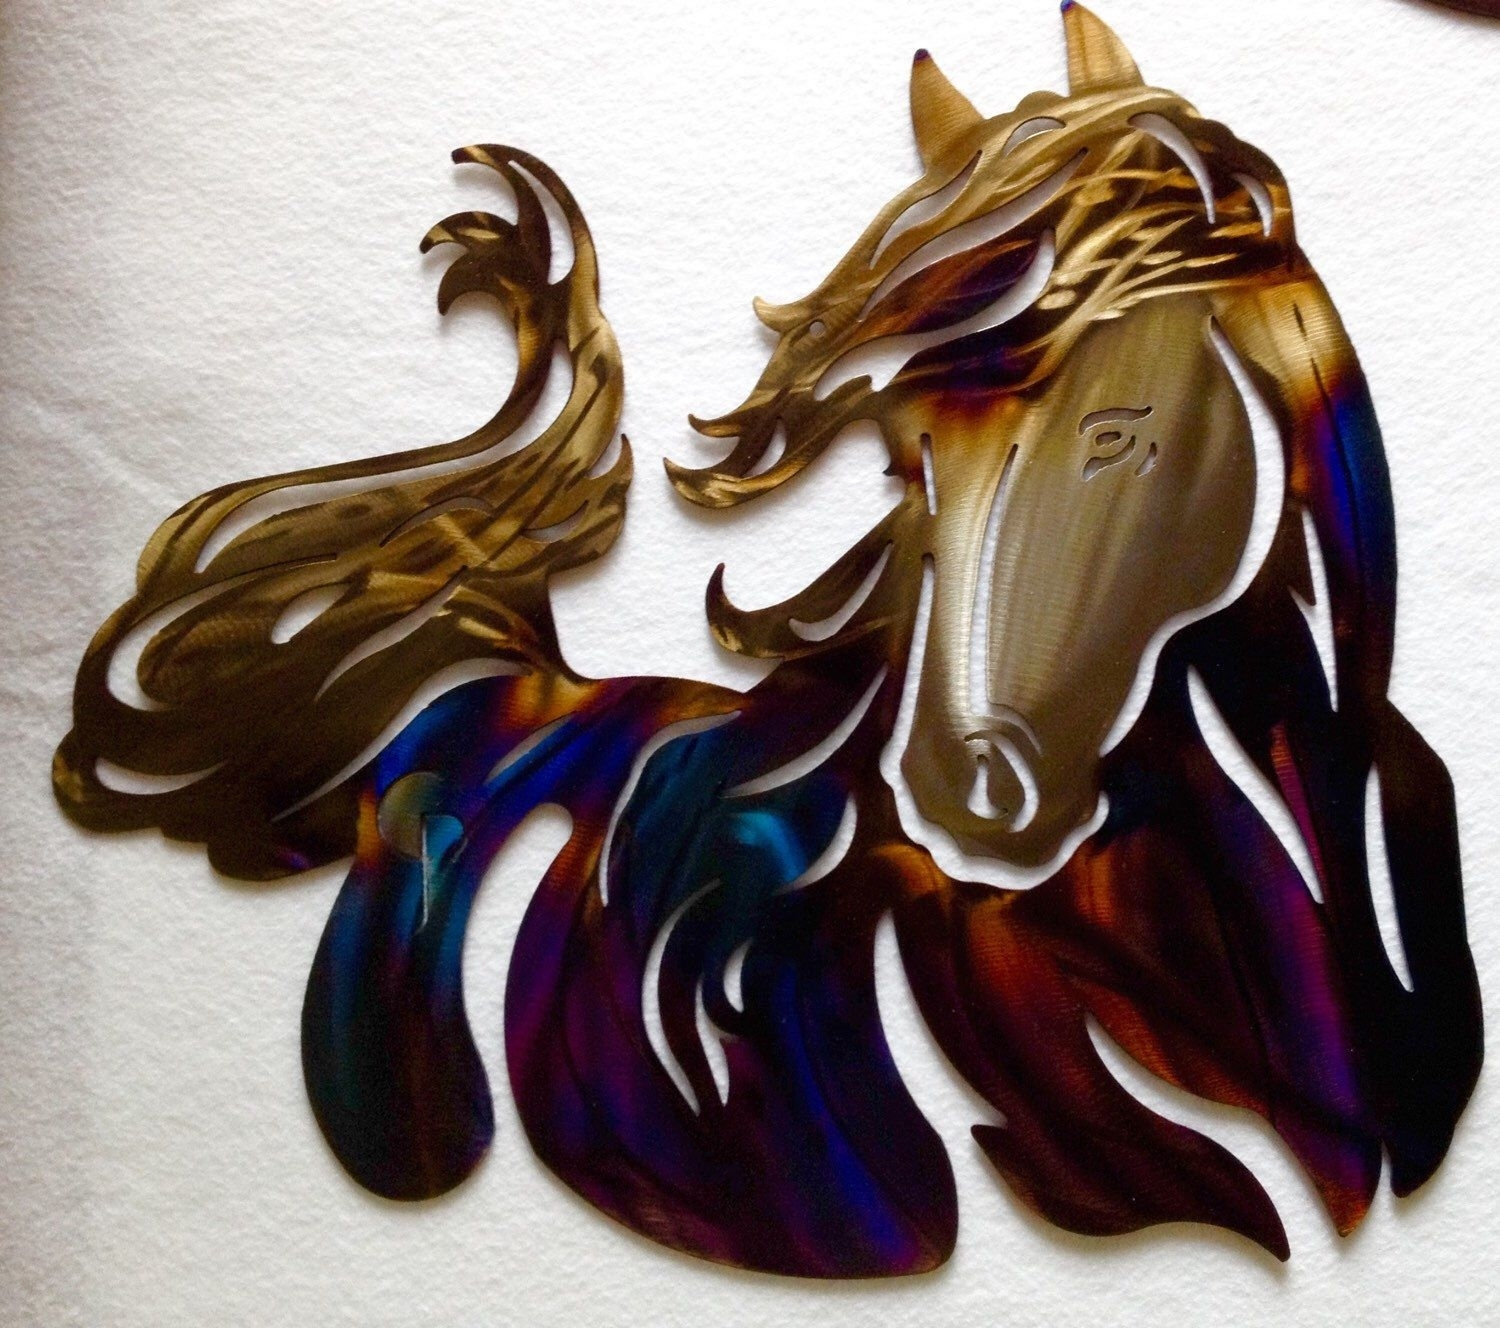 Metal Horse, Metal Art, Plasma Wall Art, Western Wall Art, Blued Intended For Most Popular Western Wall Art (View 8 of 20)